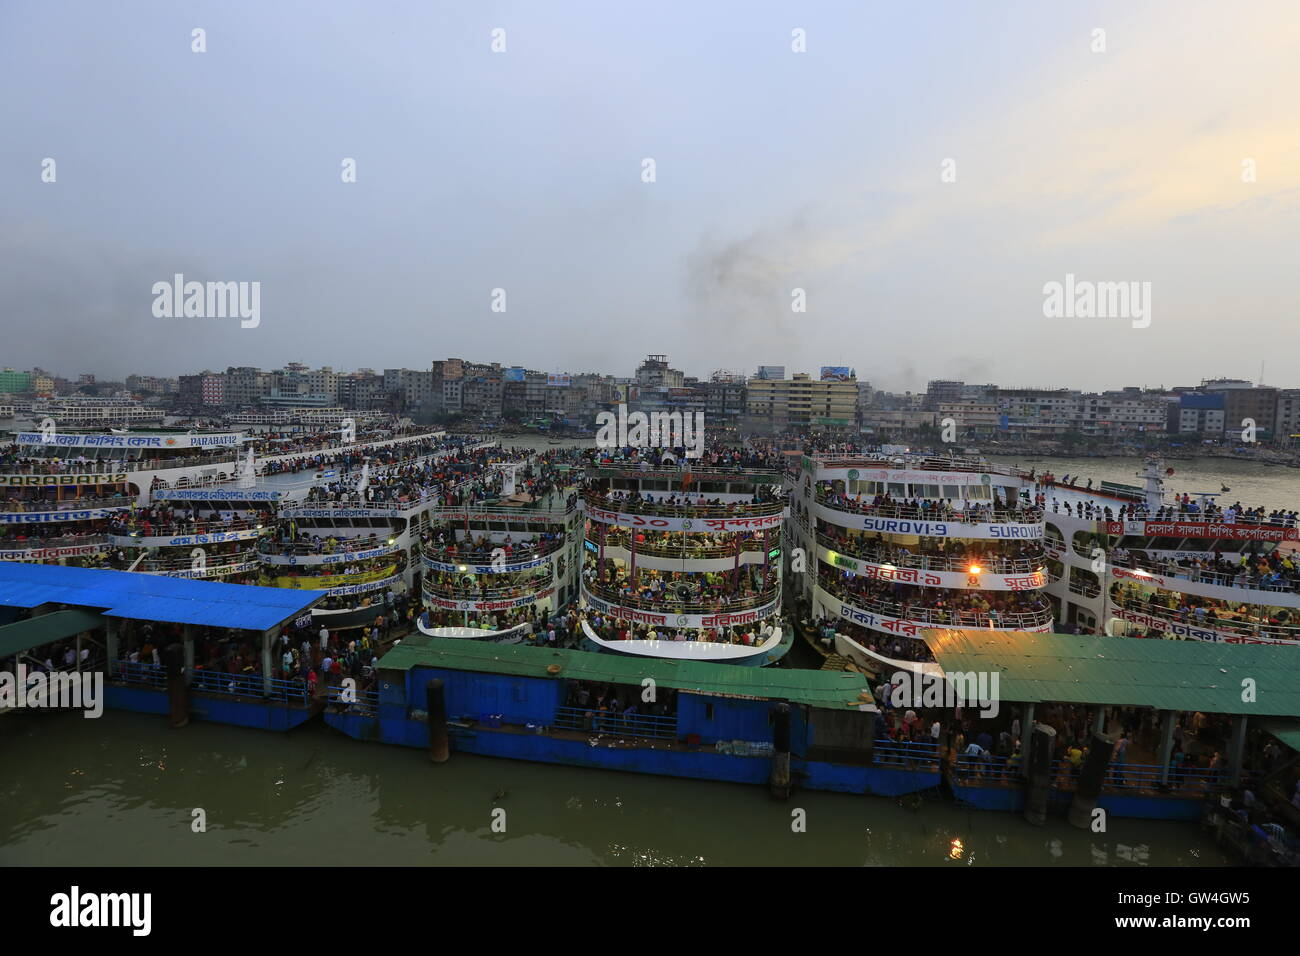 Dhaka, Bangladesh. 11 September, 2016. Thousands of city dwellers boarding launches at Sadarghat Launch Terminal - Stock Image